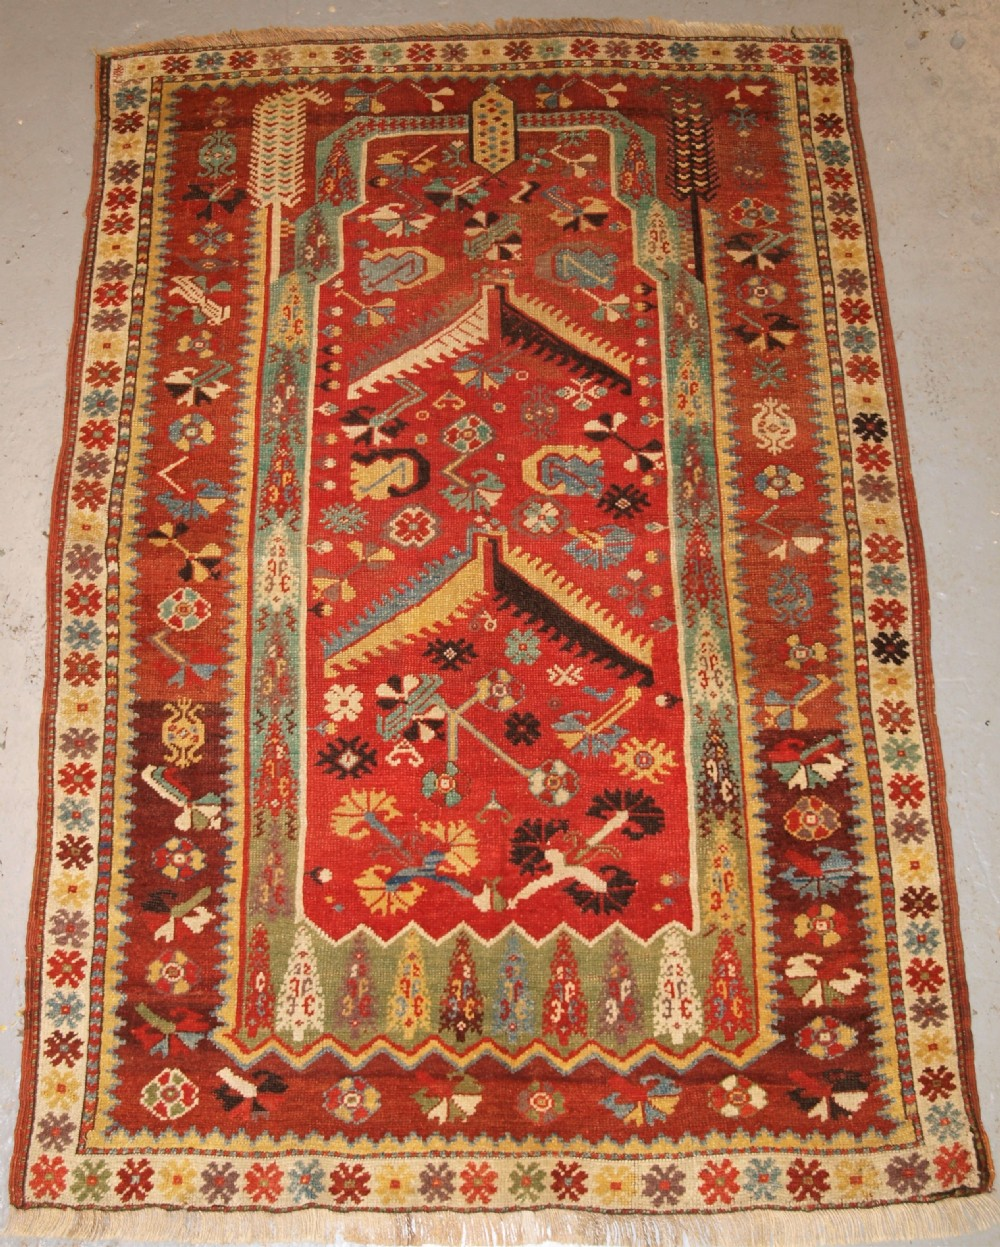 antique turkish milas prayer rug wonderful early example 2nd half 19th century